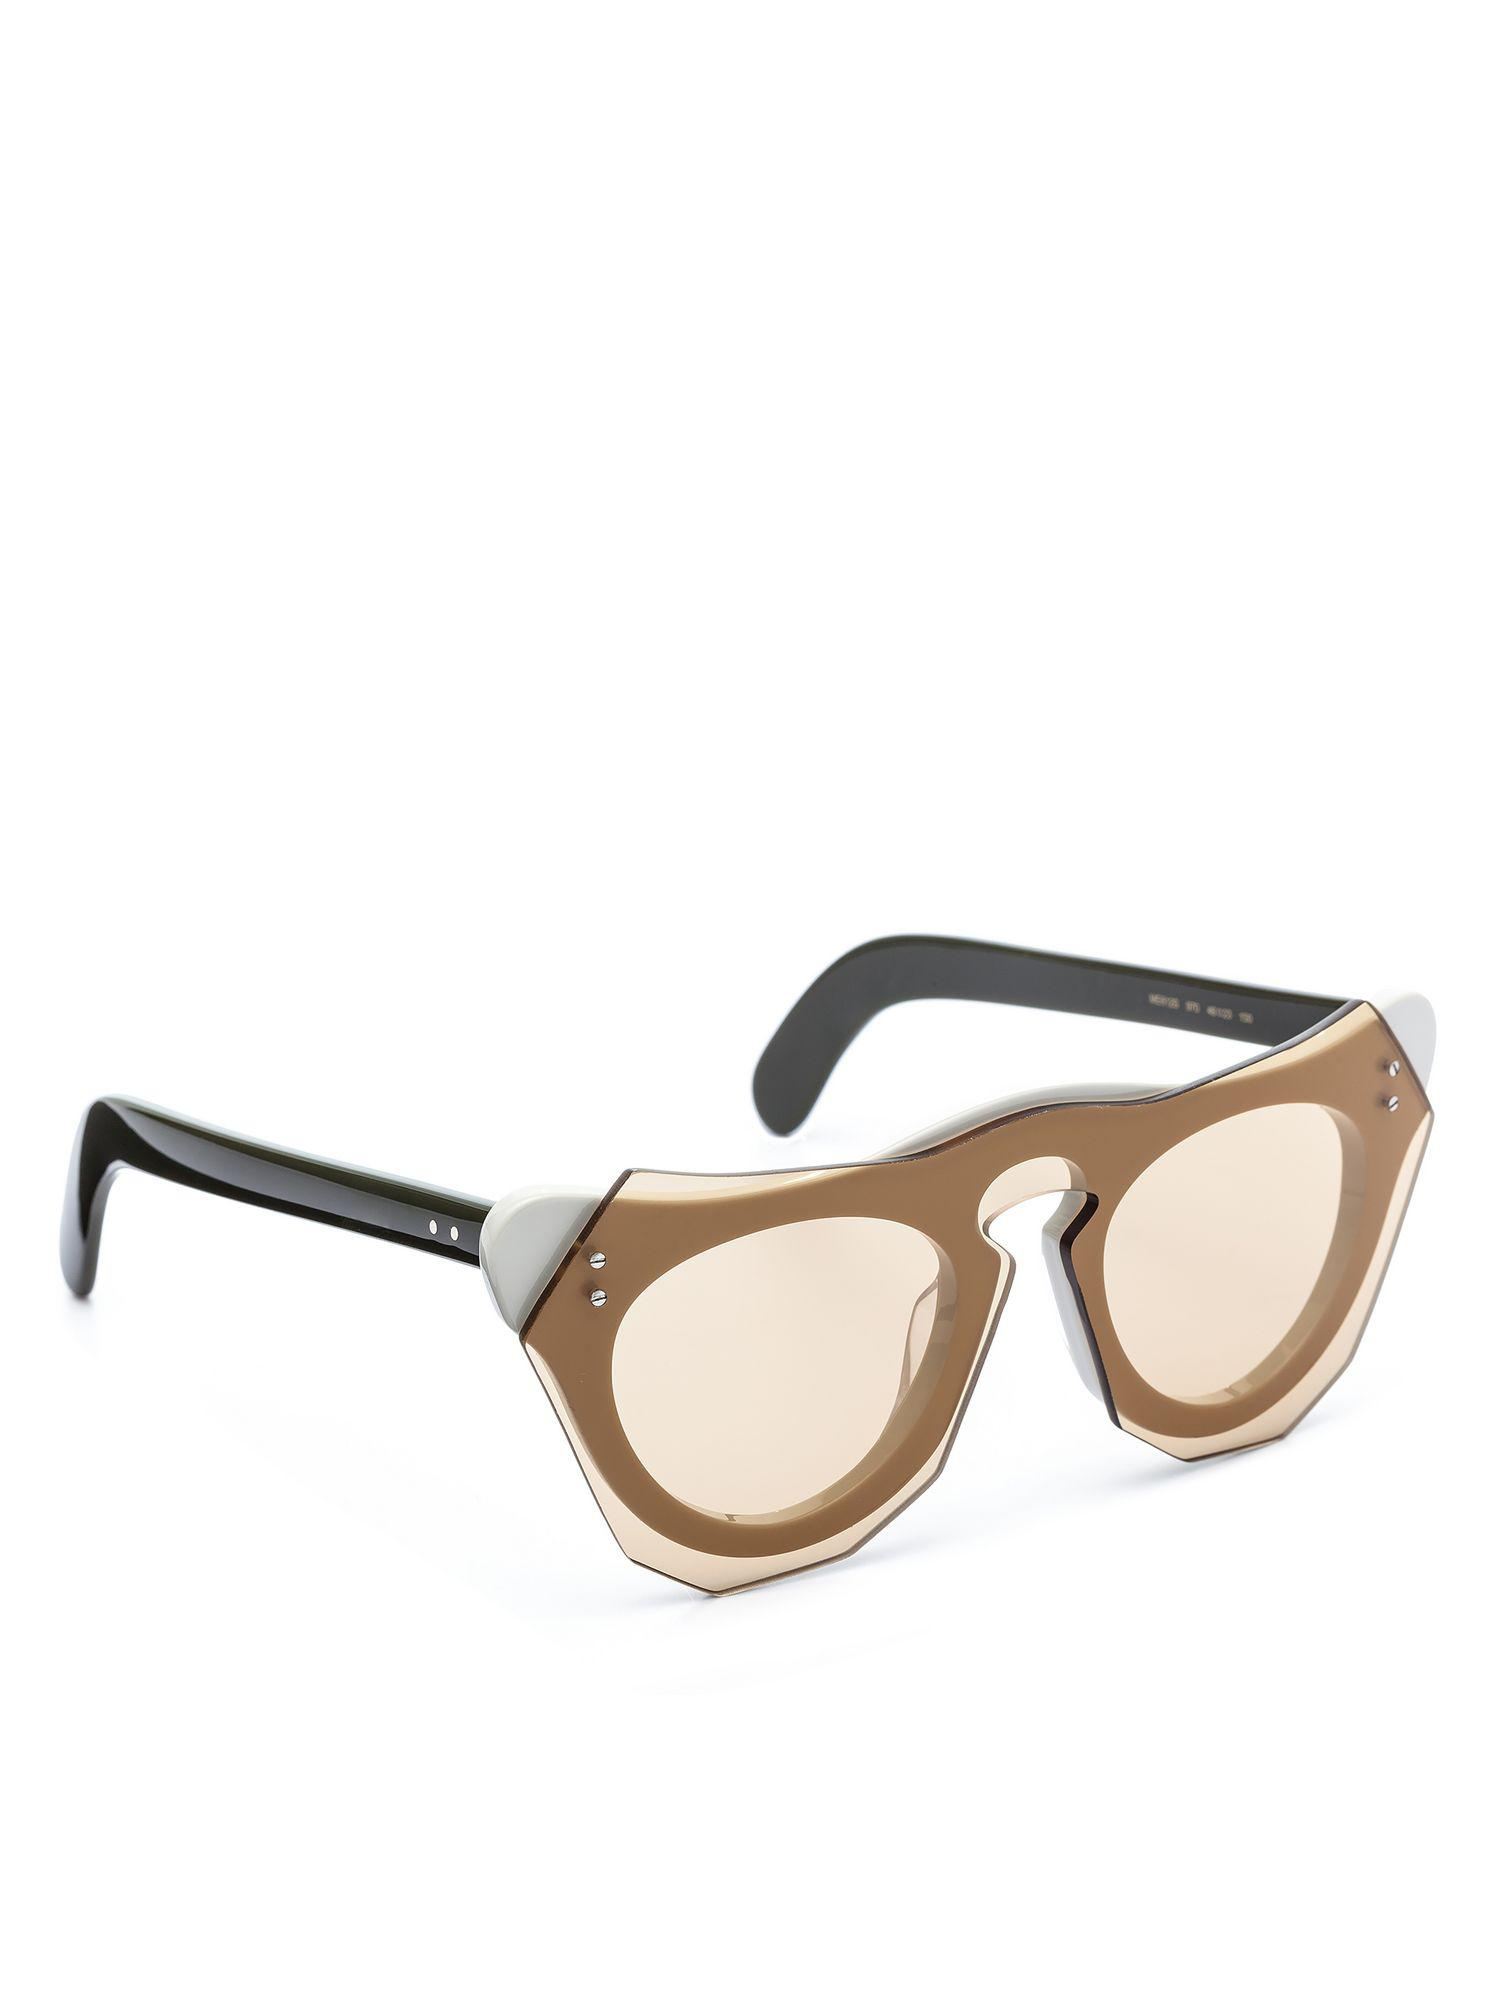 db6352091f Marni - Multicolor Cut Out Acetate Glasses With Screwed In Bar - Lyst. View  fullscreen